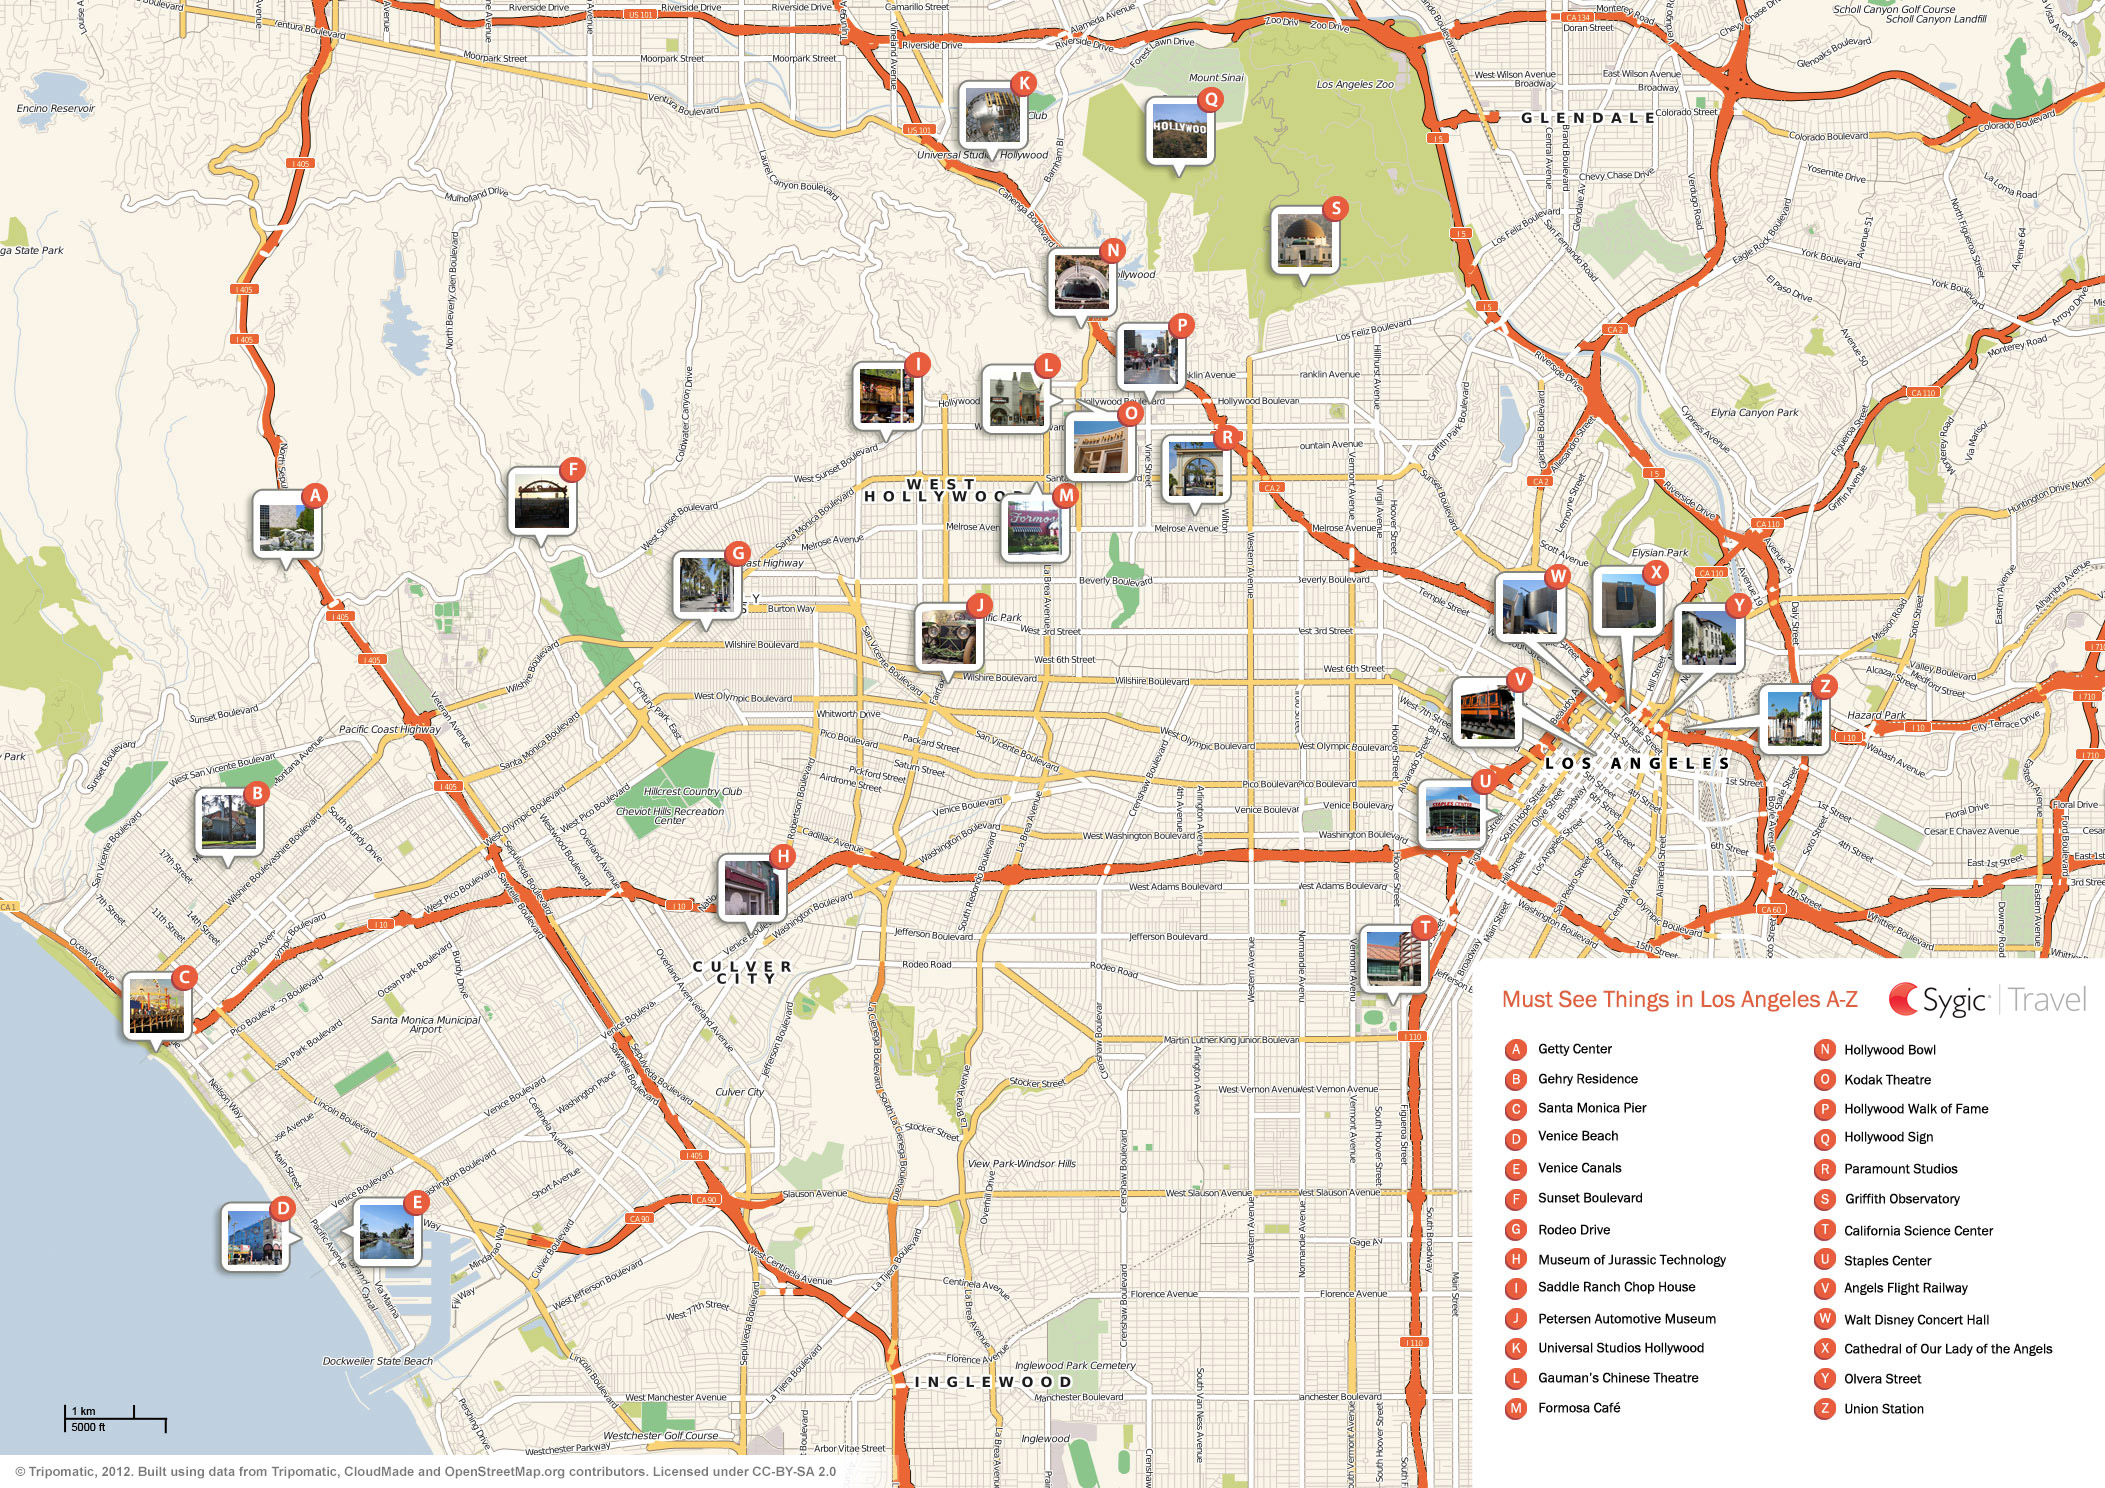 Los Angeles Printable Tourist Map – Printable Nyc Tourist Map